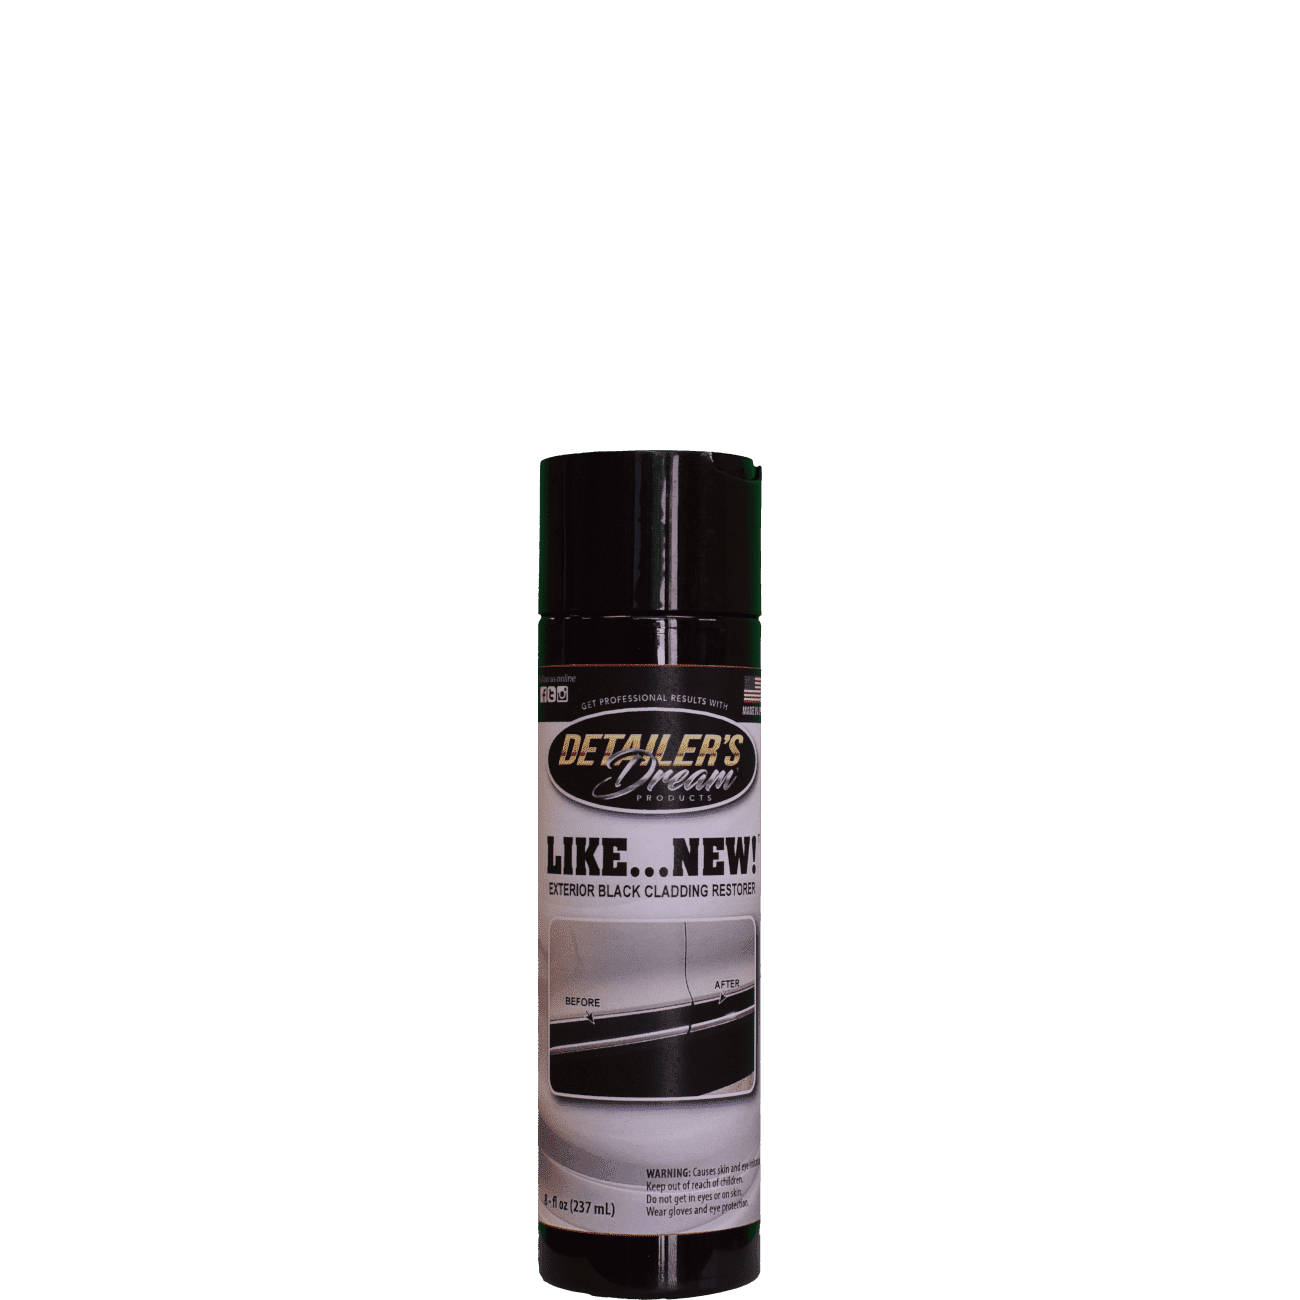 LIKE... NEW!™-Exterior Black Cladding and Engine Bay Restorer-Detailer's Dream